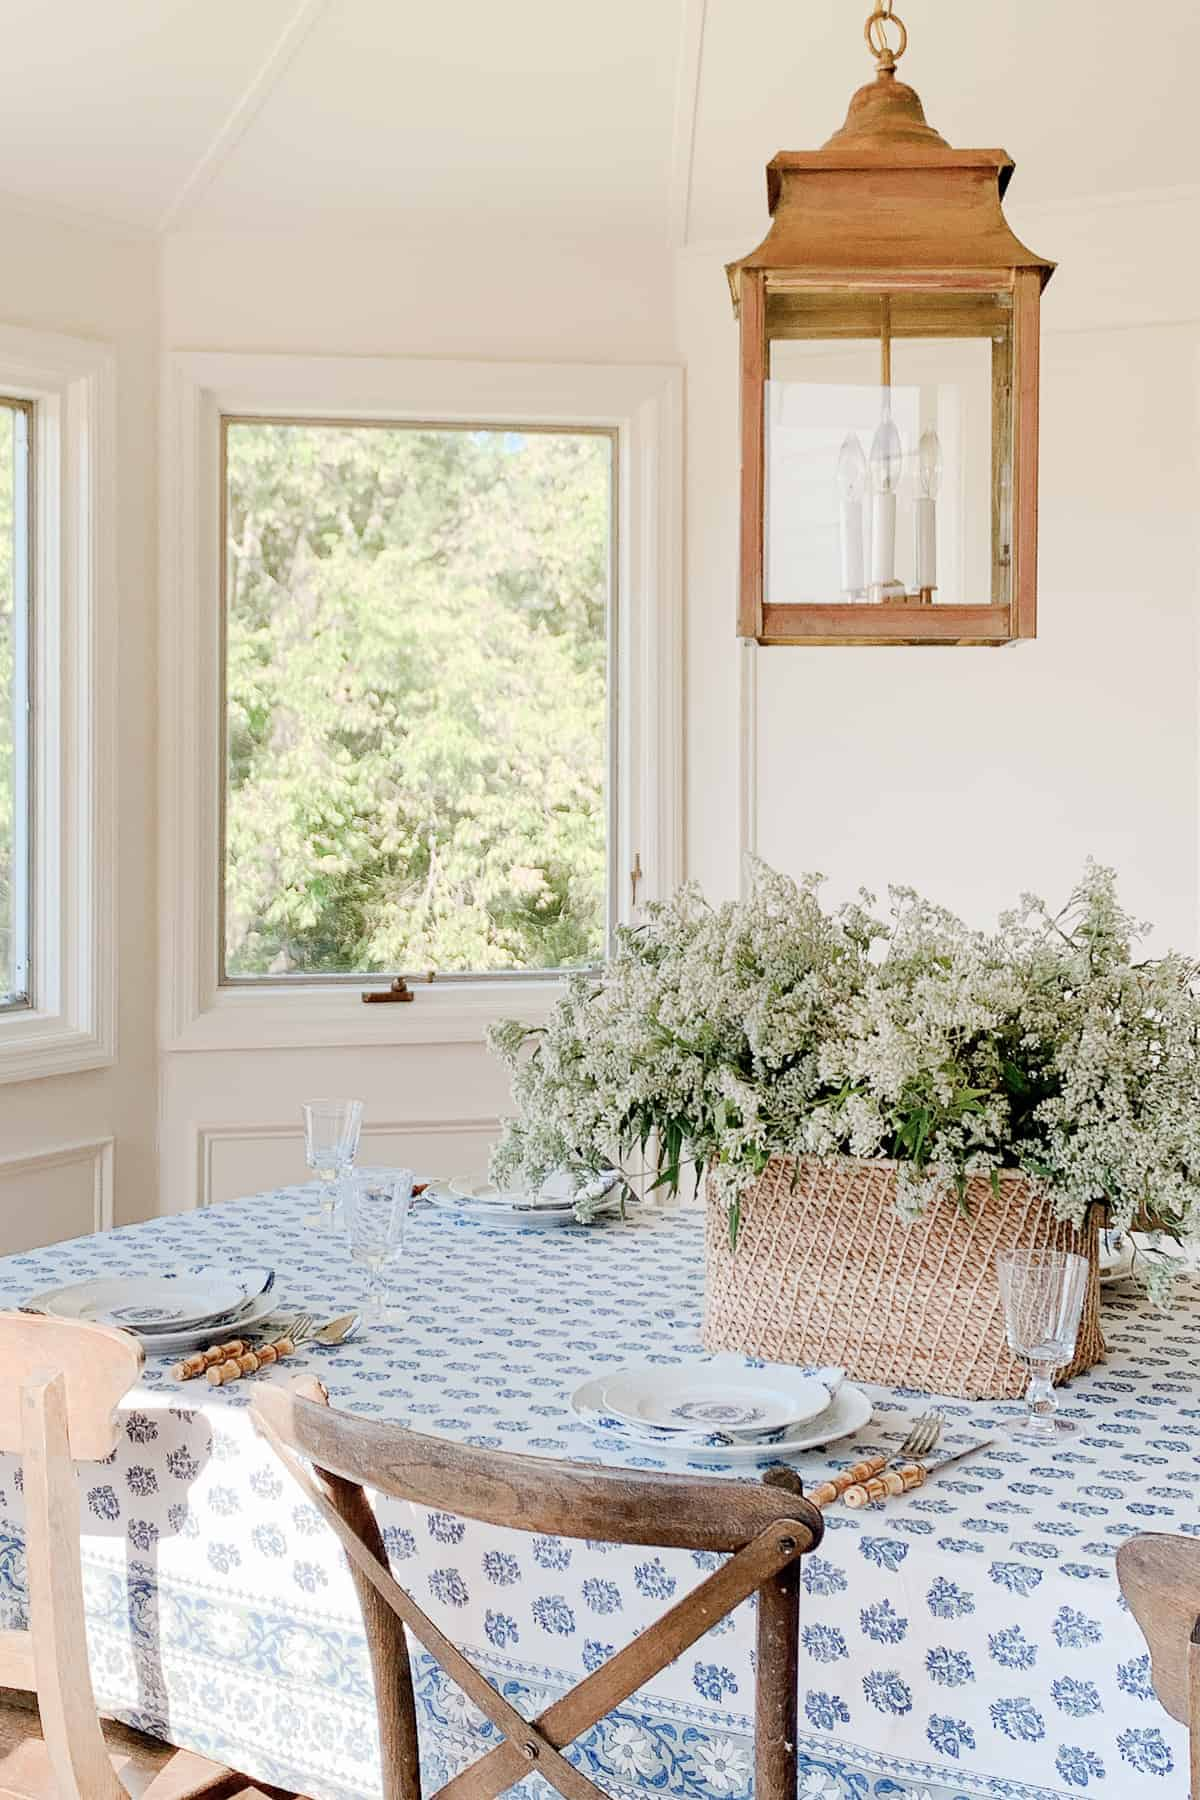 breakfast room with basket of flowers and block print table cloth